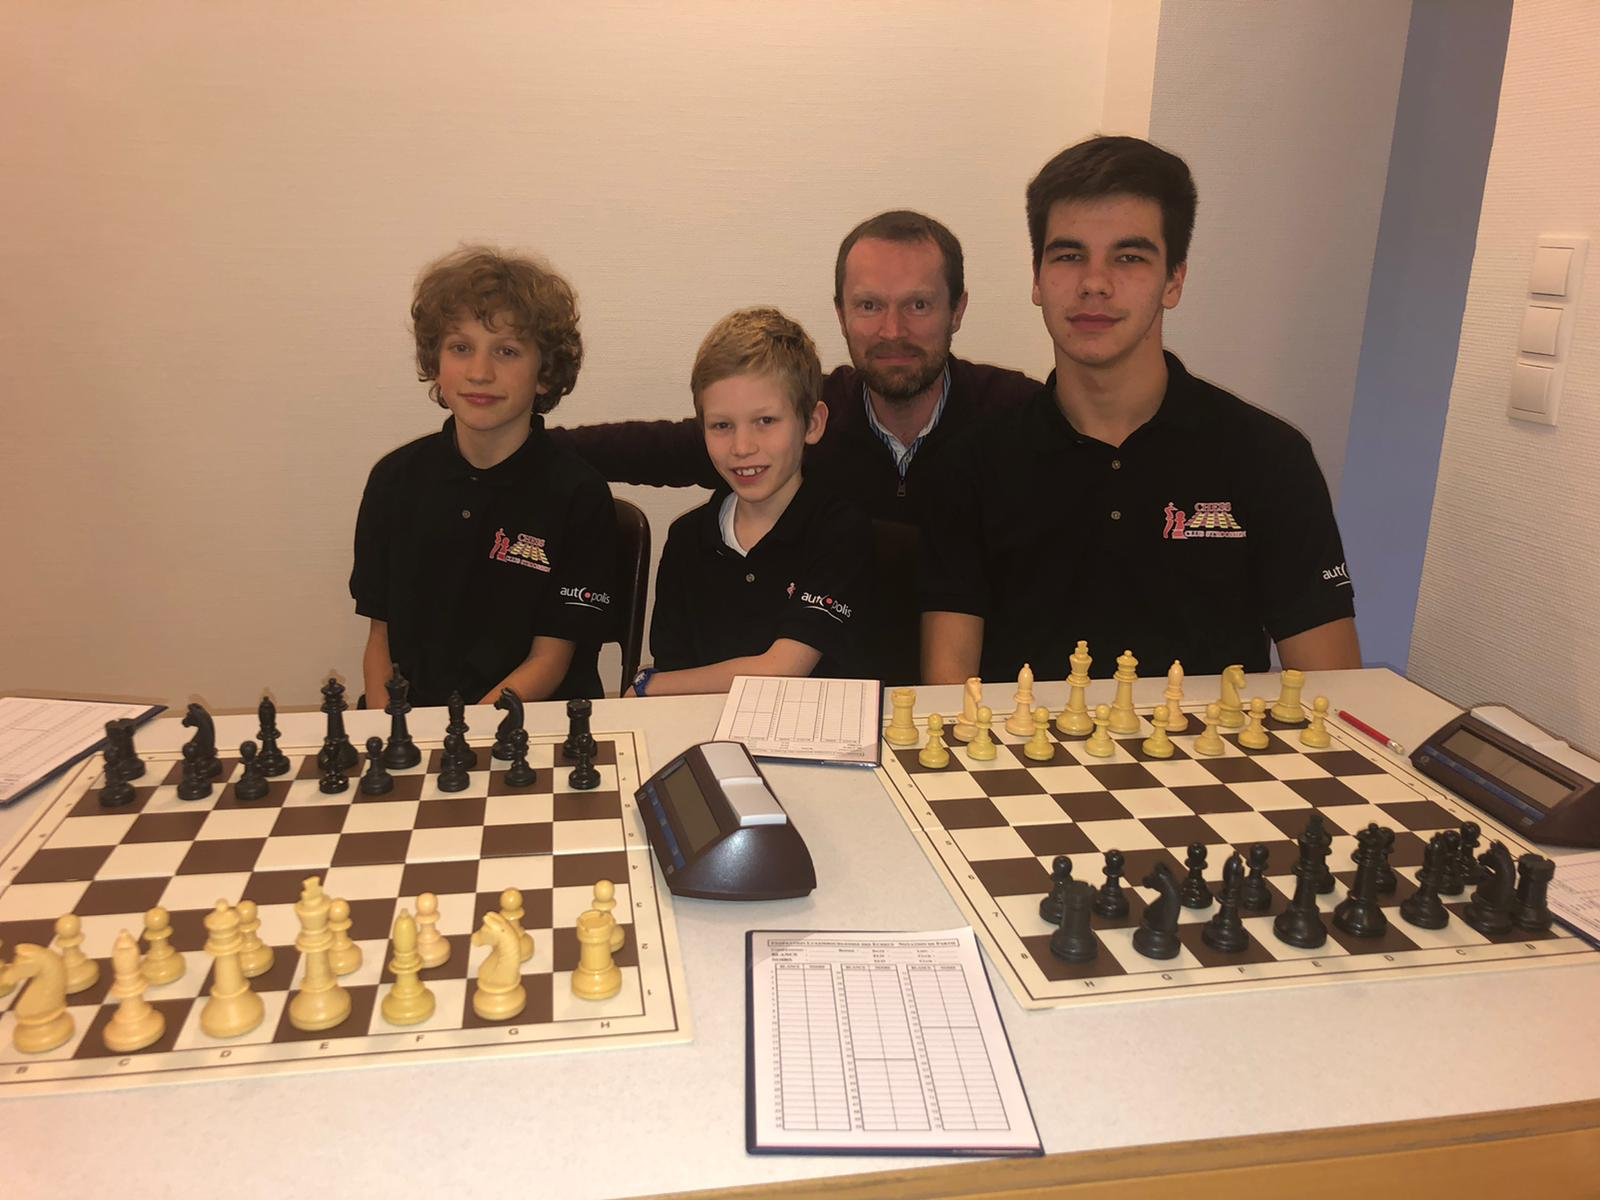 Chess result: Interclub Jeunes par équipes - 10+17 November 2019